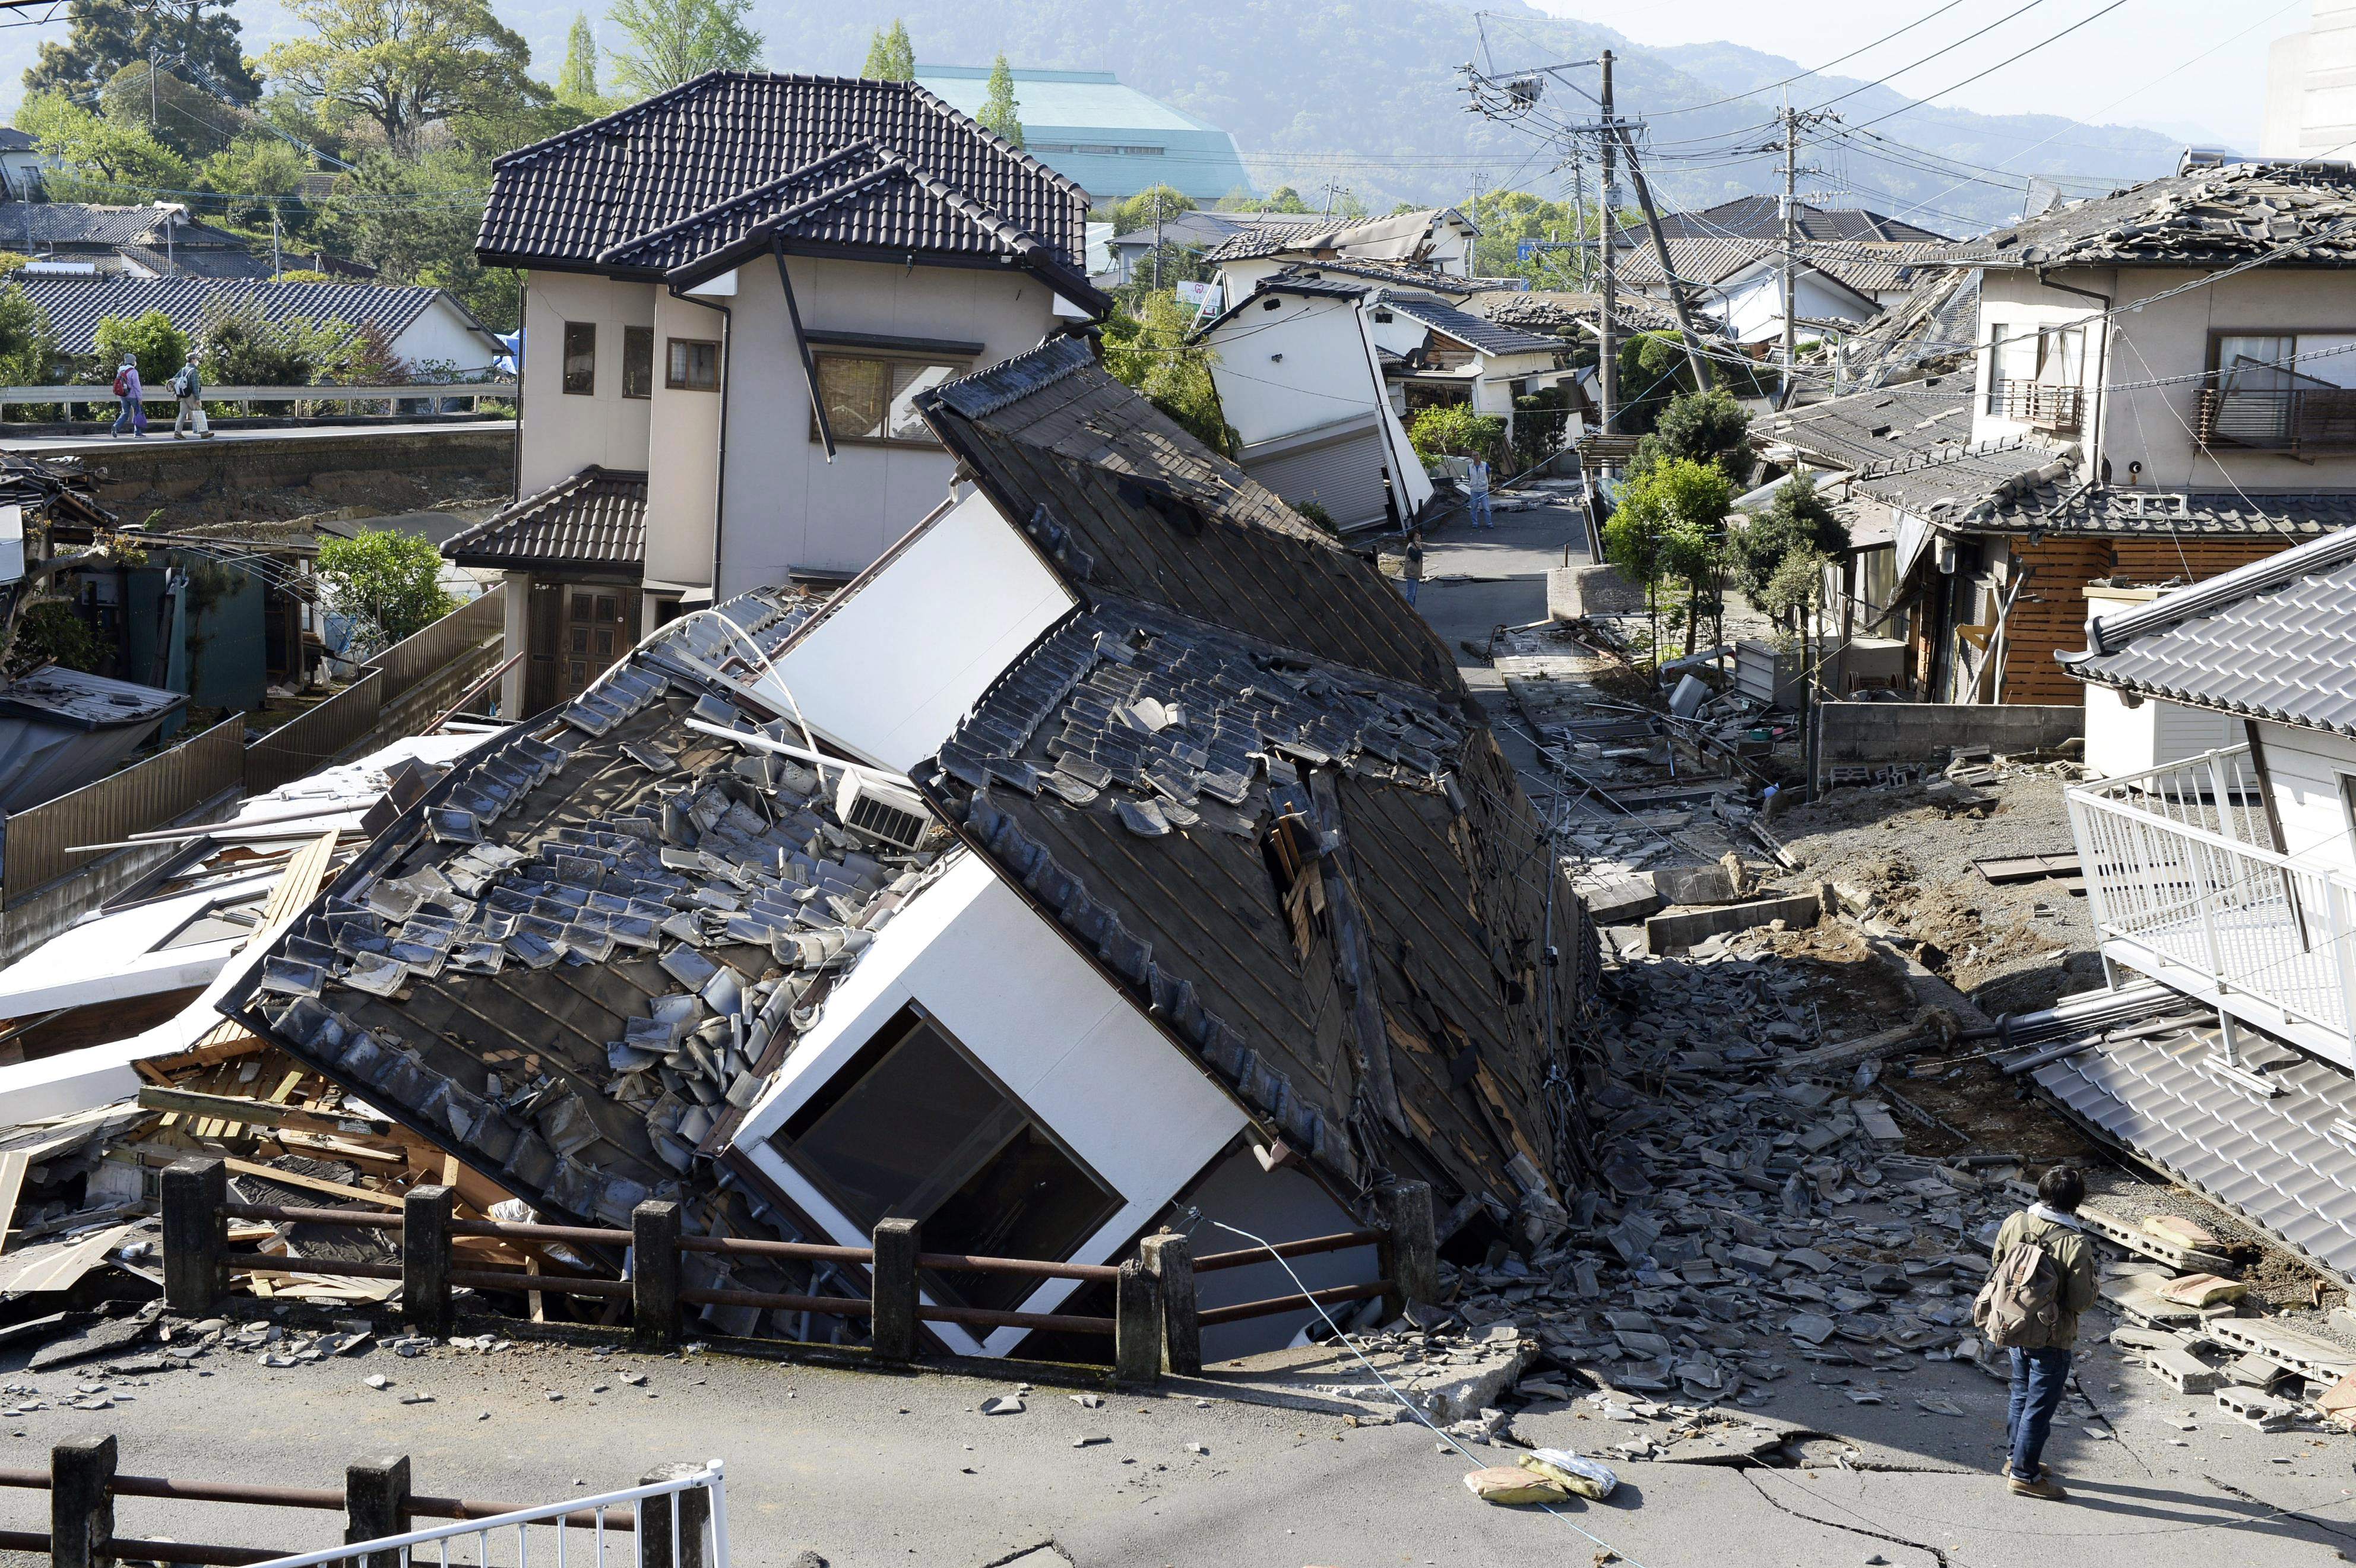 Houses are seen destroyed after an earthquake in Mashiki, Kumamoto prefecture, on April 16, 2016.